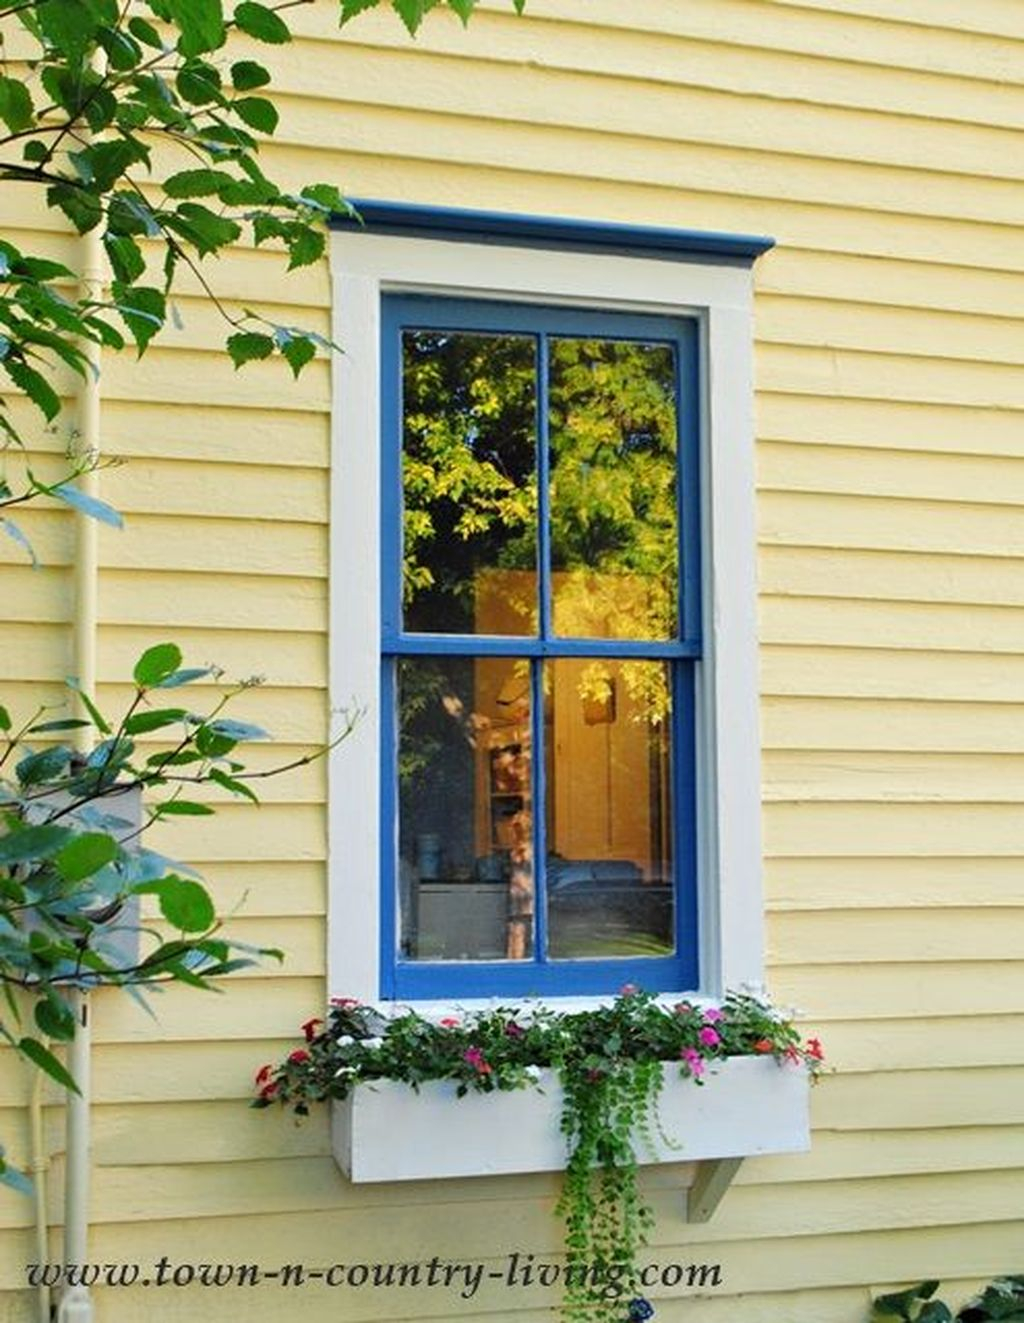 Fabulous Exterior Decoration Ideas With Flower In Window 35